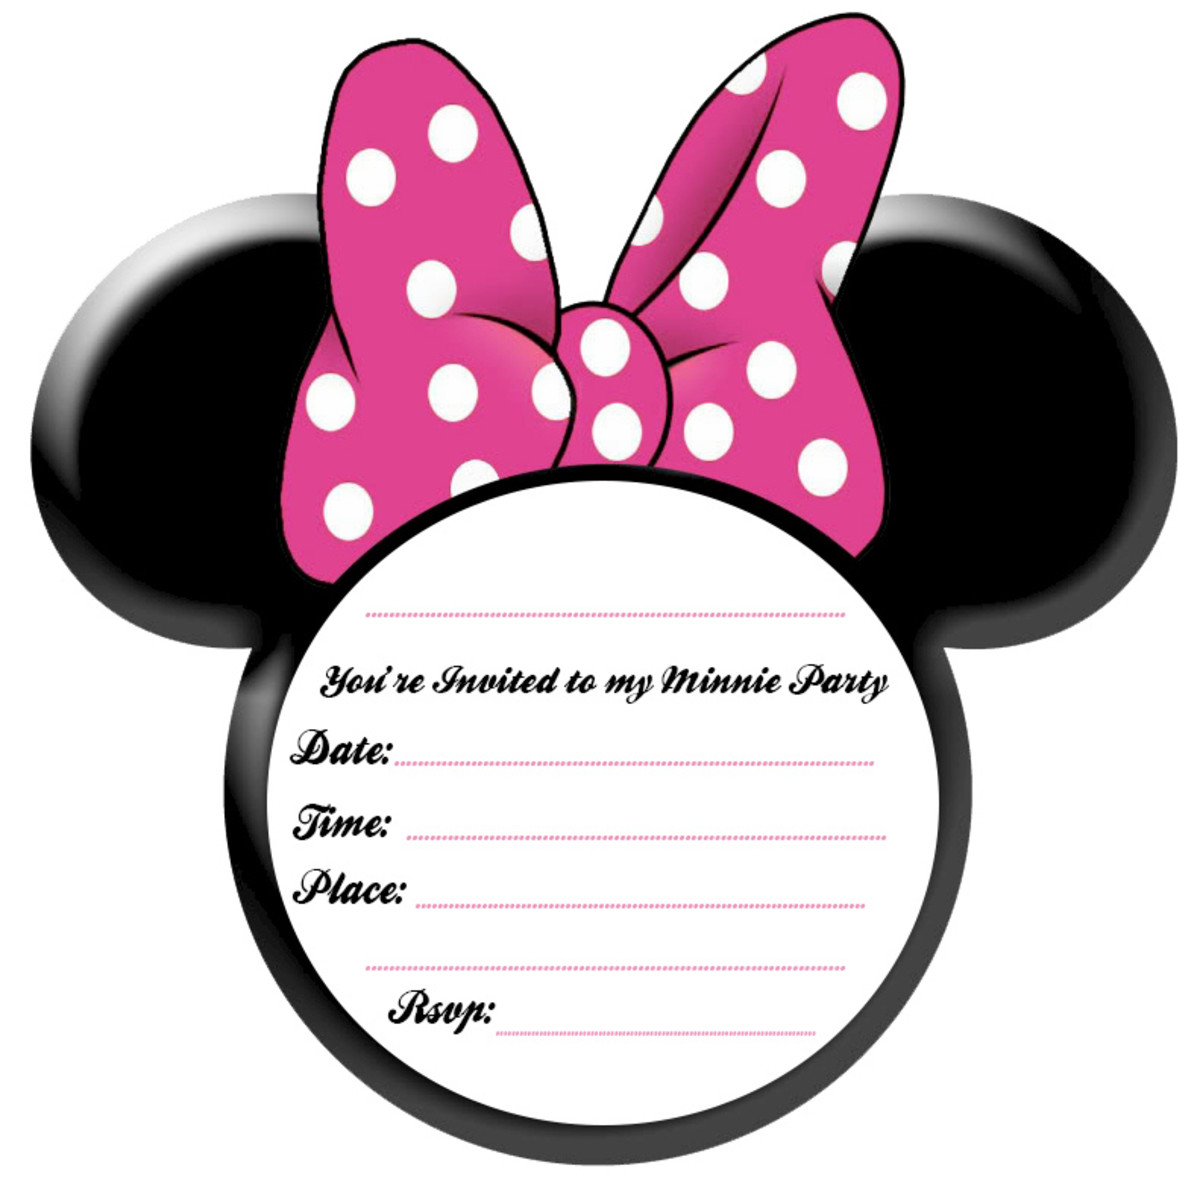 image relating to Minnie Mouse Template Printable named Minnie Mouse Social gathering Strategies and Totally free Printables Holidappy